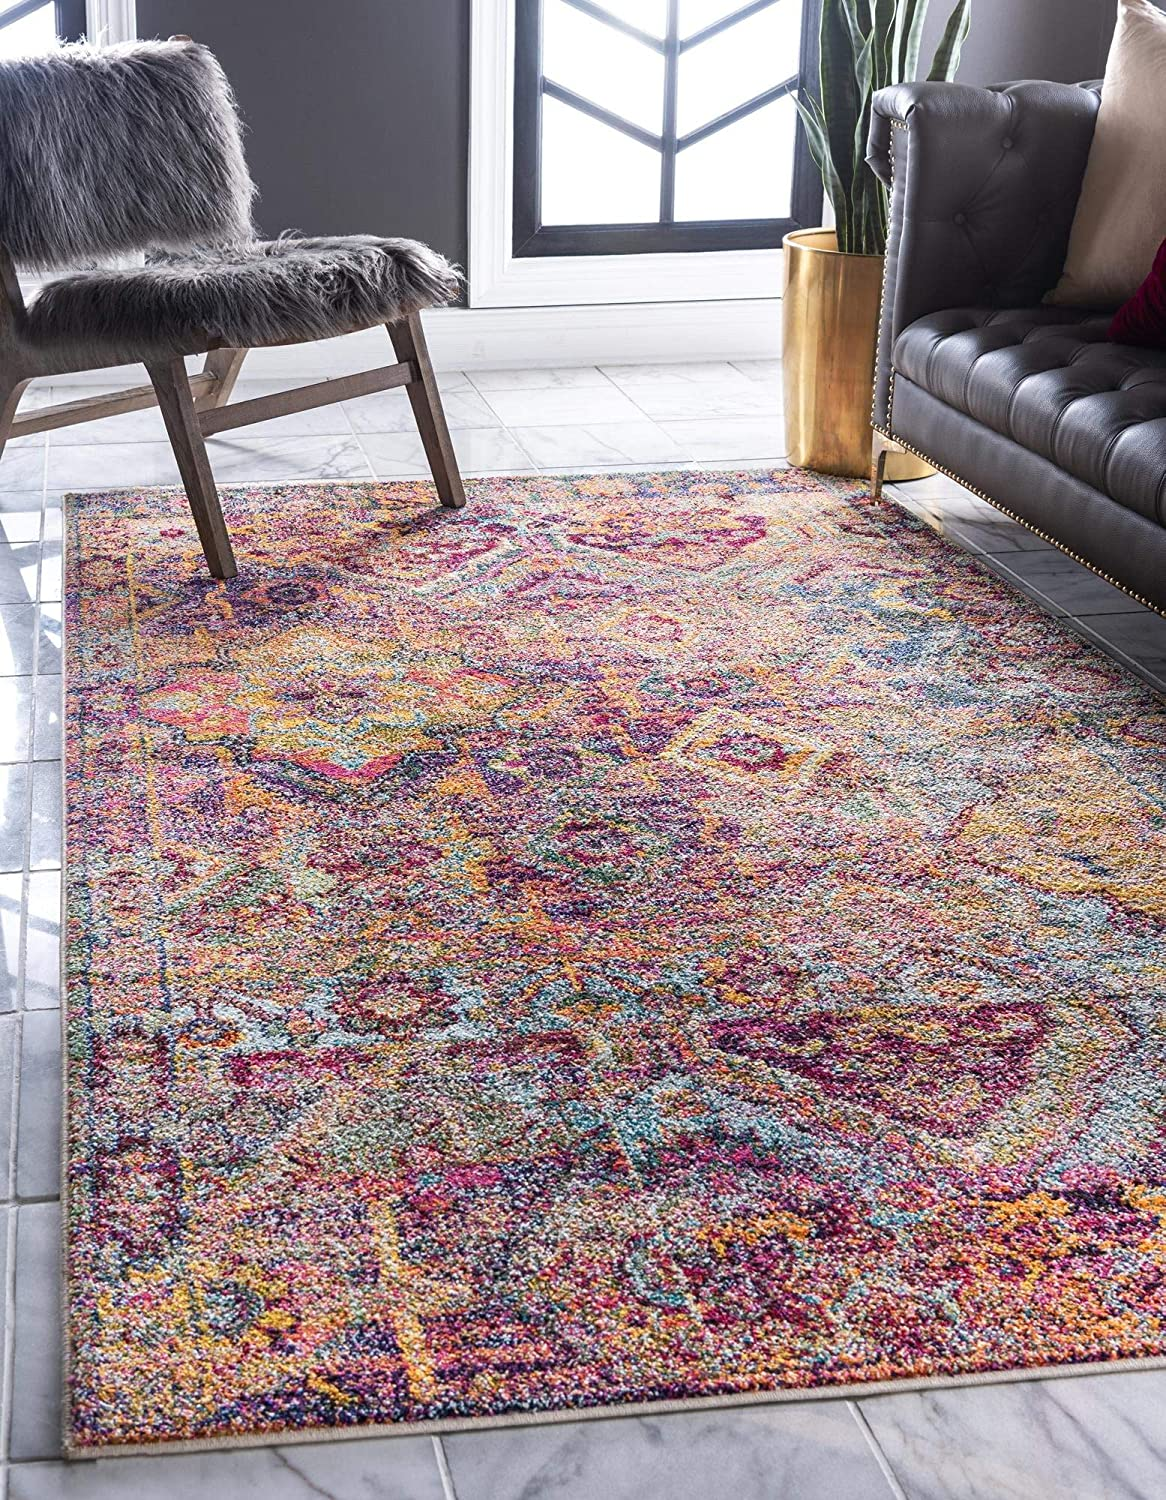 Rugs.com El Paso Collection Rug – 5' x 8' Multi Medium Rug Perfect for Living Rooms, Large Dining Rooms, Open Floorplans